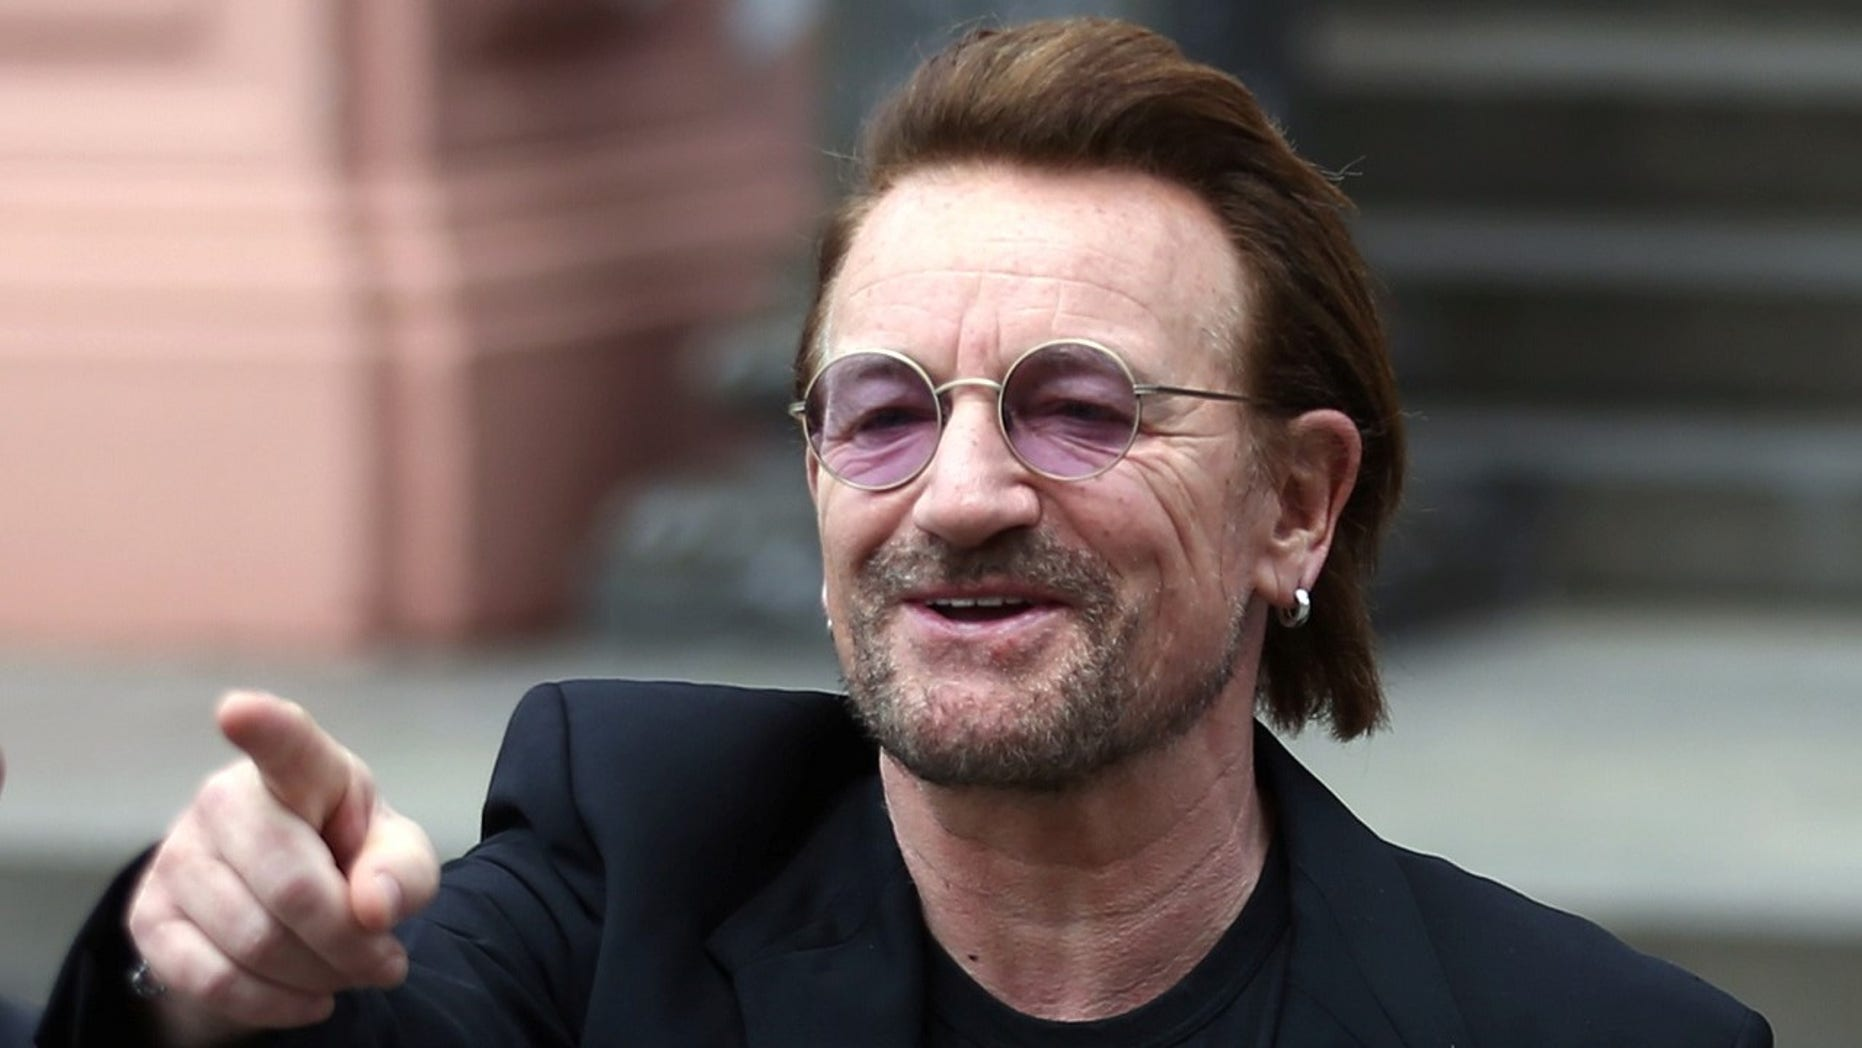 Bono had to cancel a concert when he lost his voice during a song.